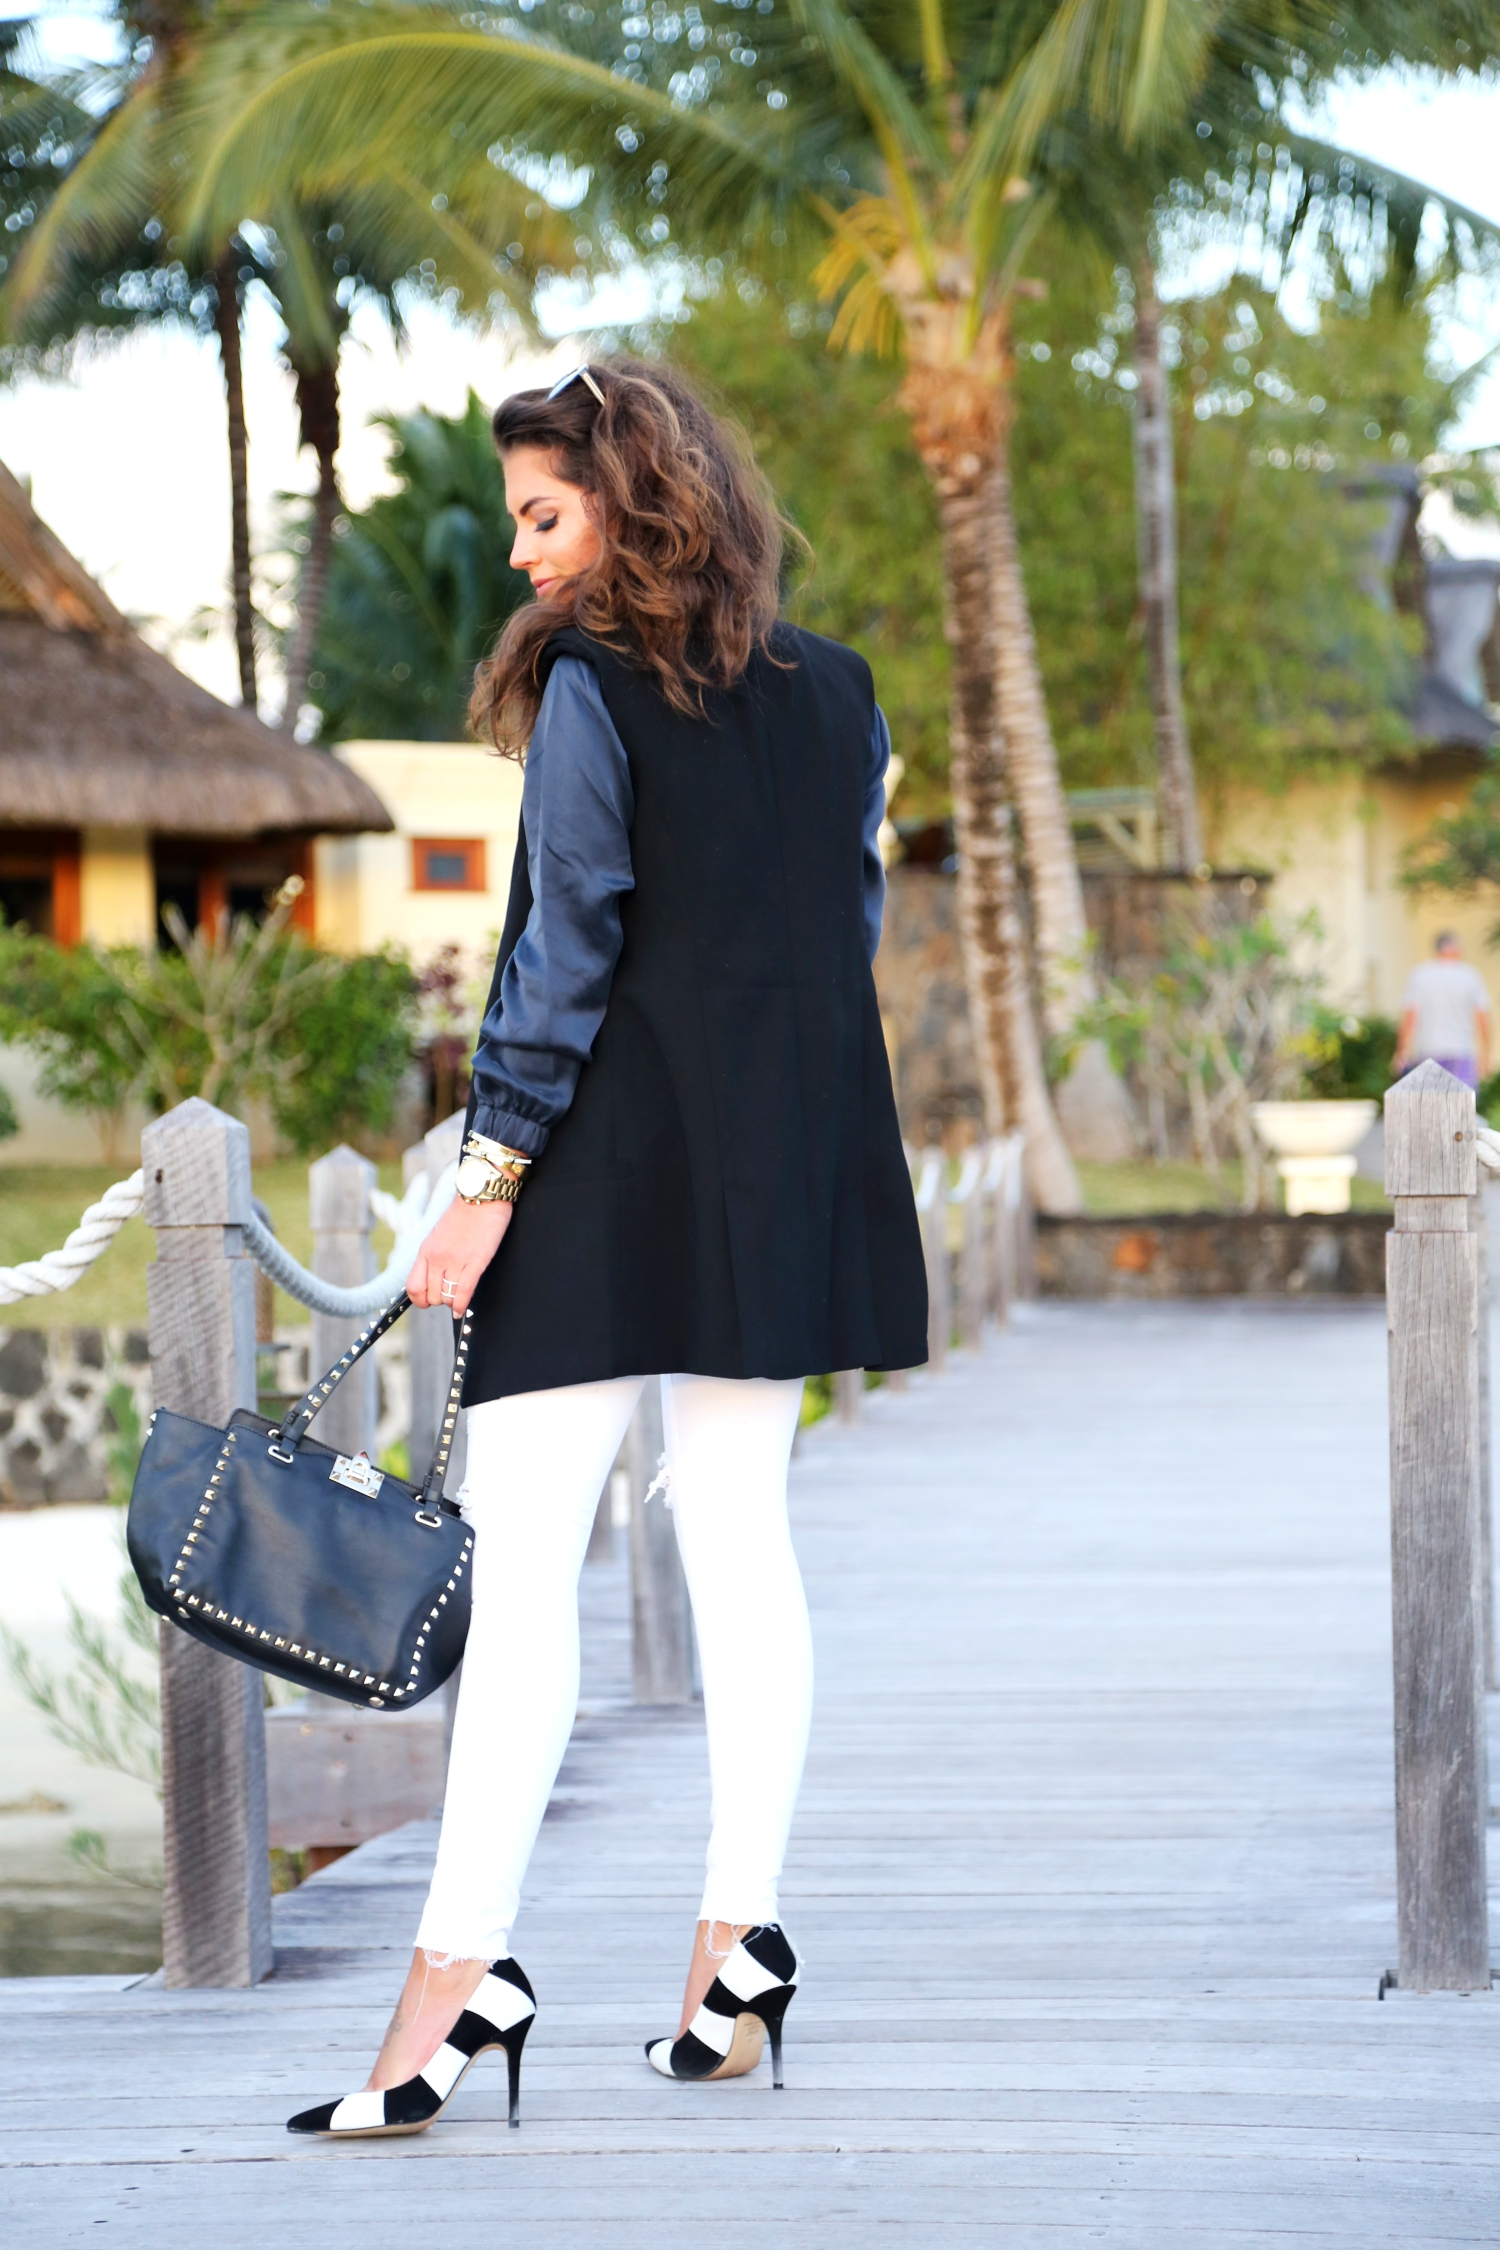 outfit-details-fashionhippieloves-mauritius-vacation-look